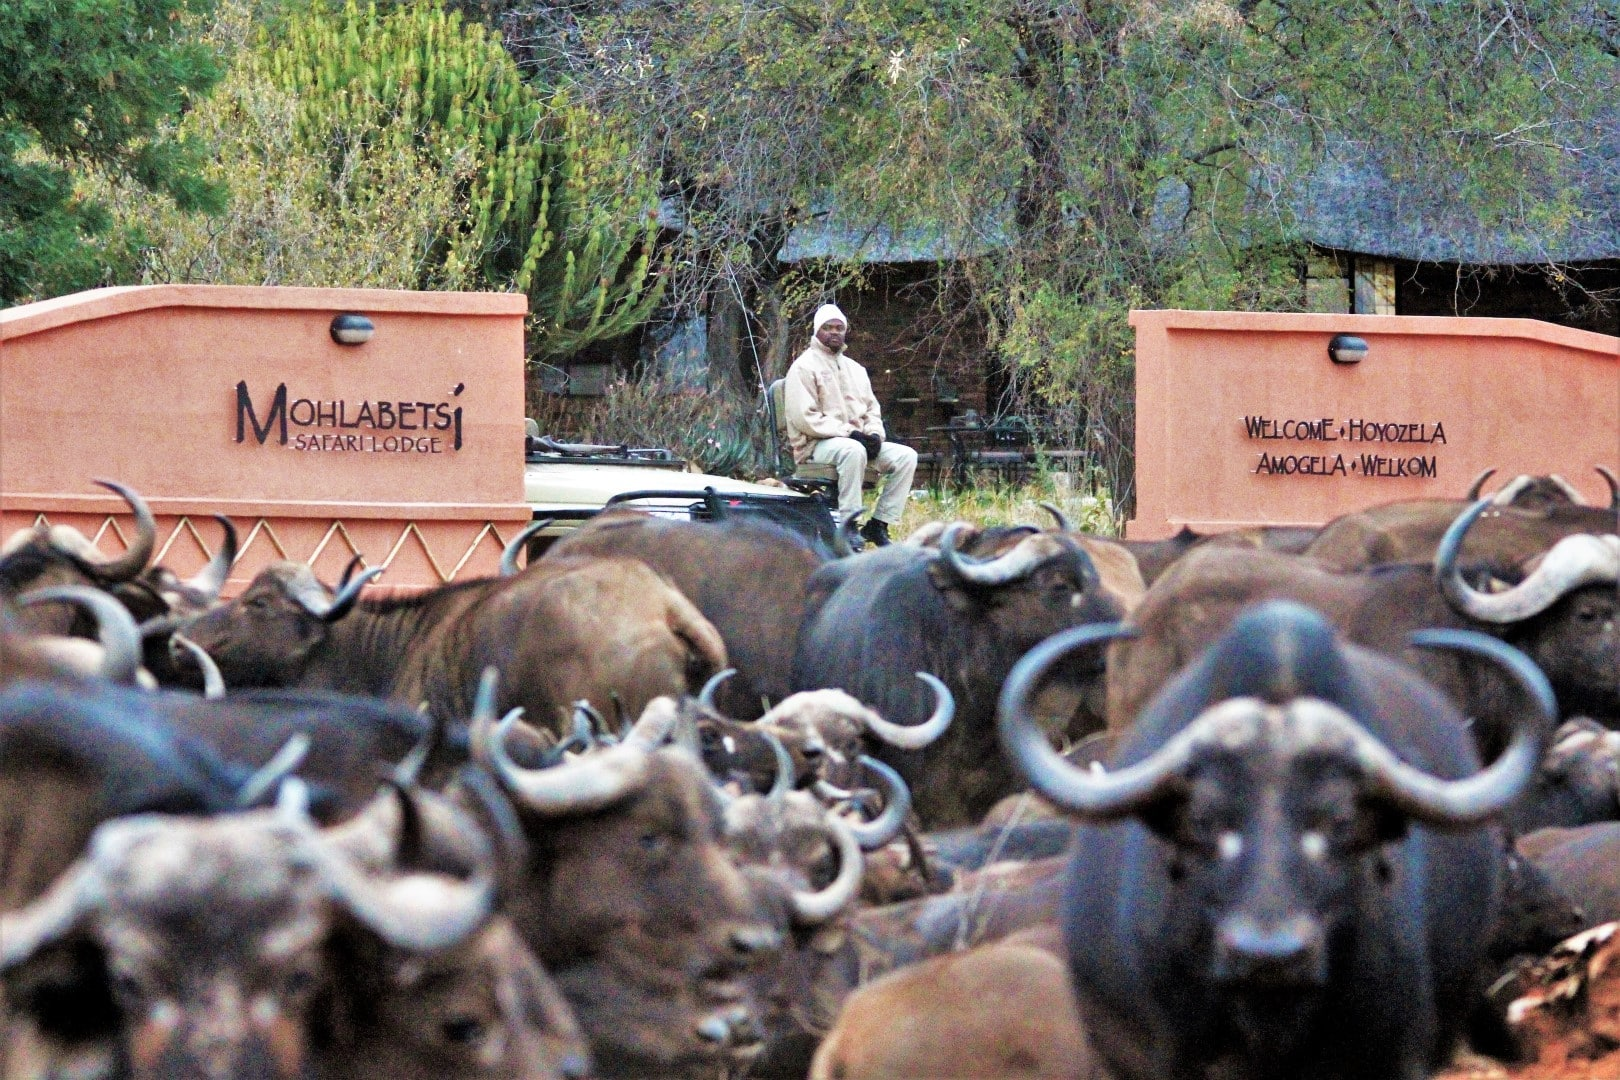 Buffalo at Mohlabetsi camp entrance